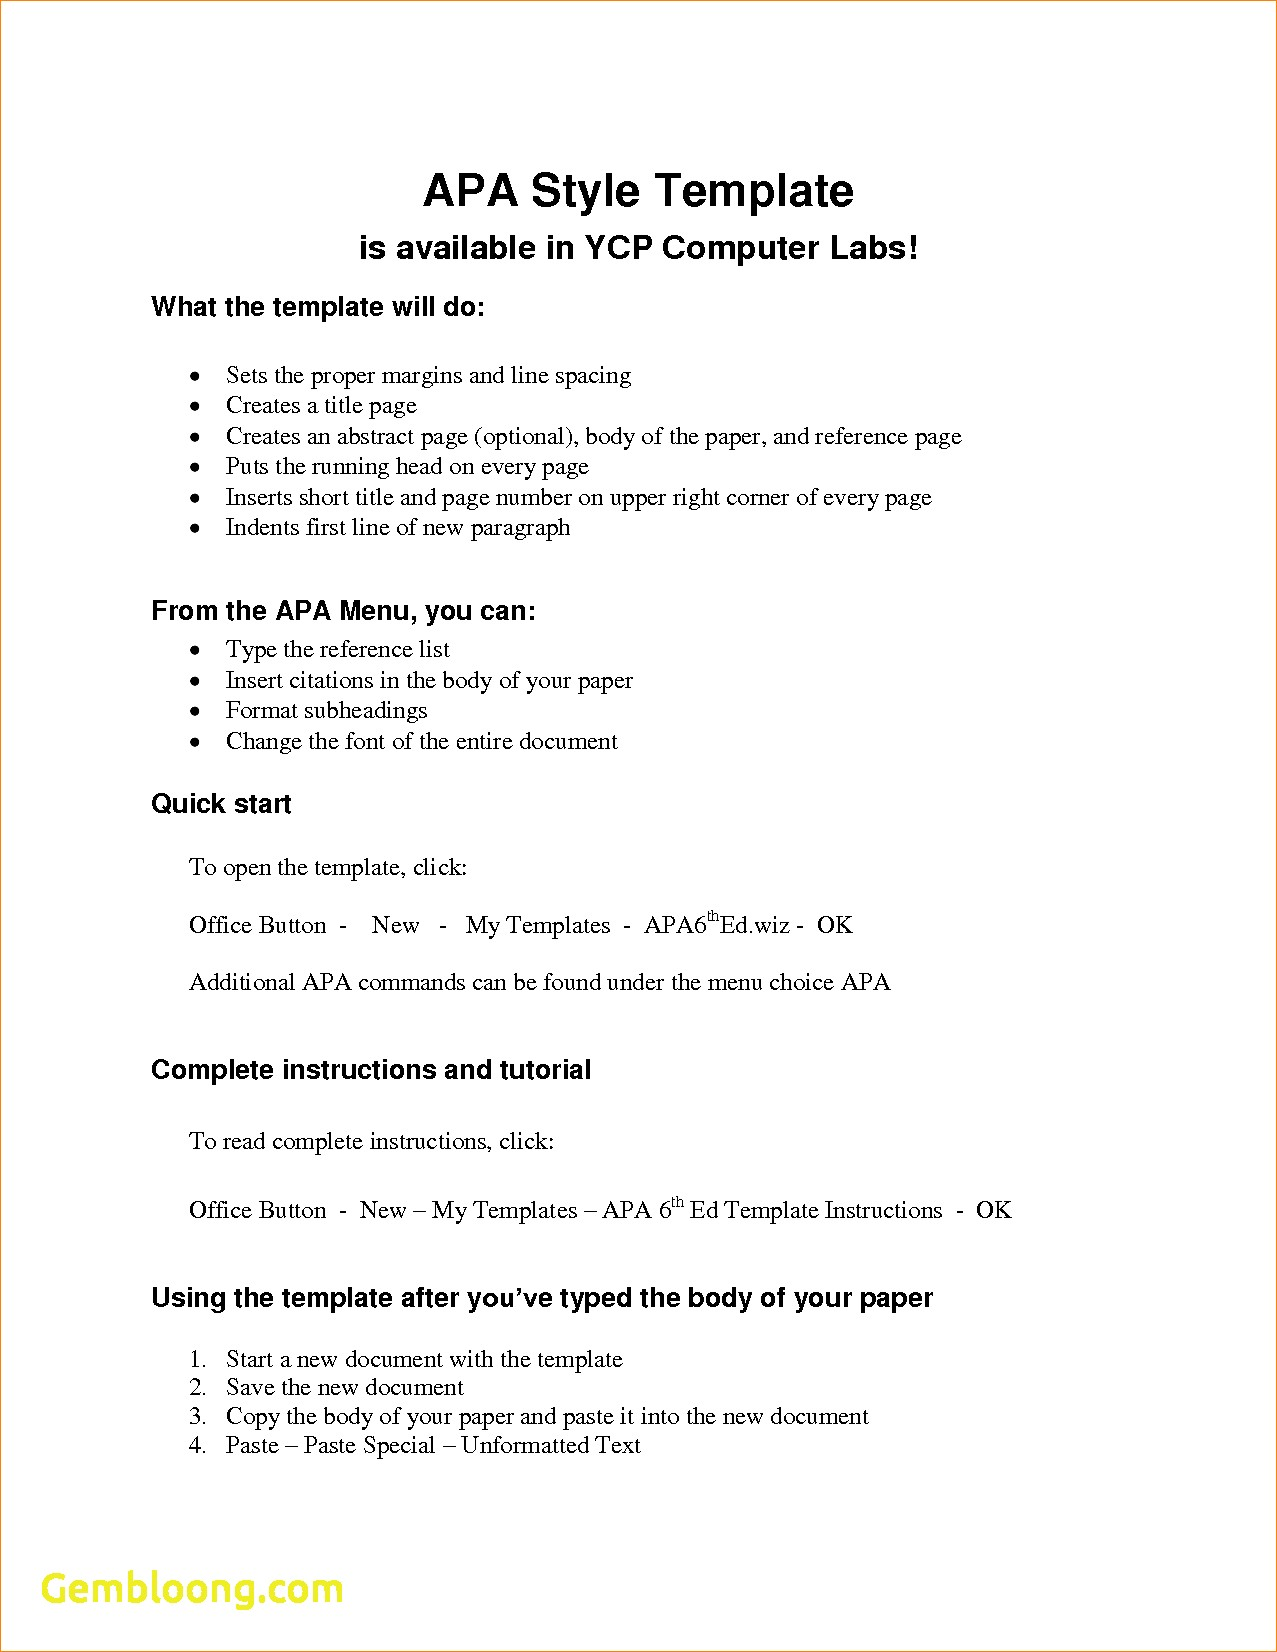 005 Format For Researchaper Apa Template Fresh Buy Custom Essays Cheap Tornemark Dagskole Of Best A Research Paper Writing Style An Outline Example Full